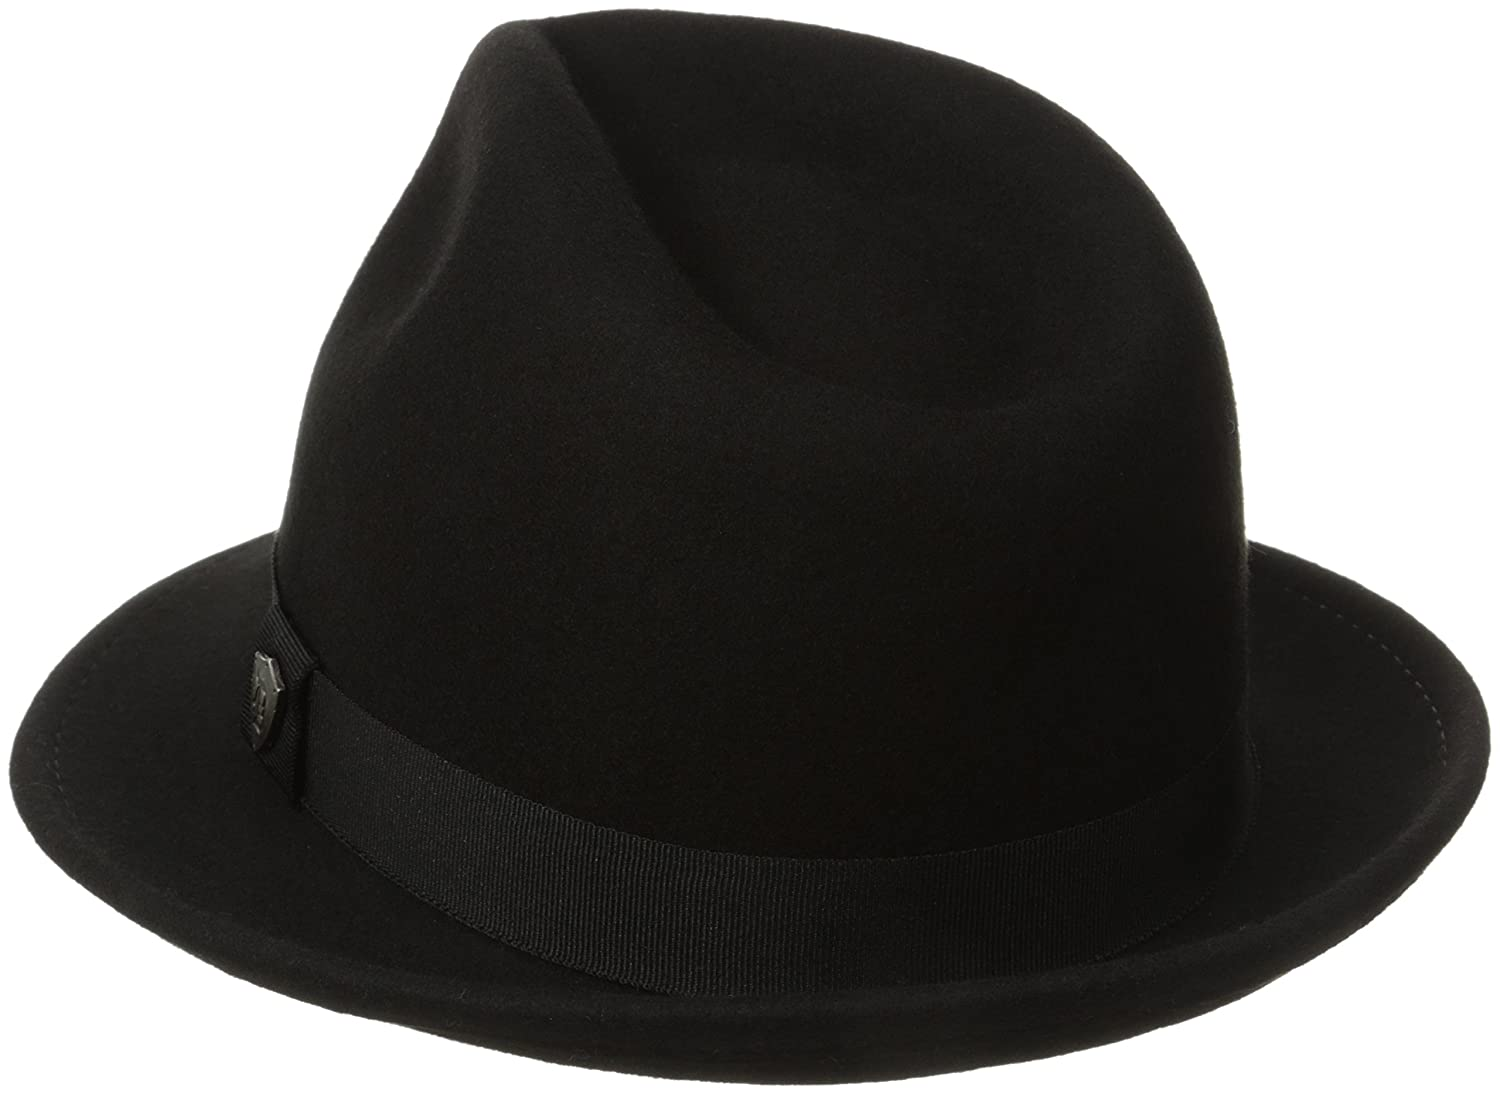 1950s Men's Costumes: Greaser, Elvis, Rockabilly, Prom Dorfman Wool Felt Hat $44.95 AT vintagedancer.com